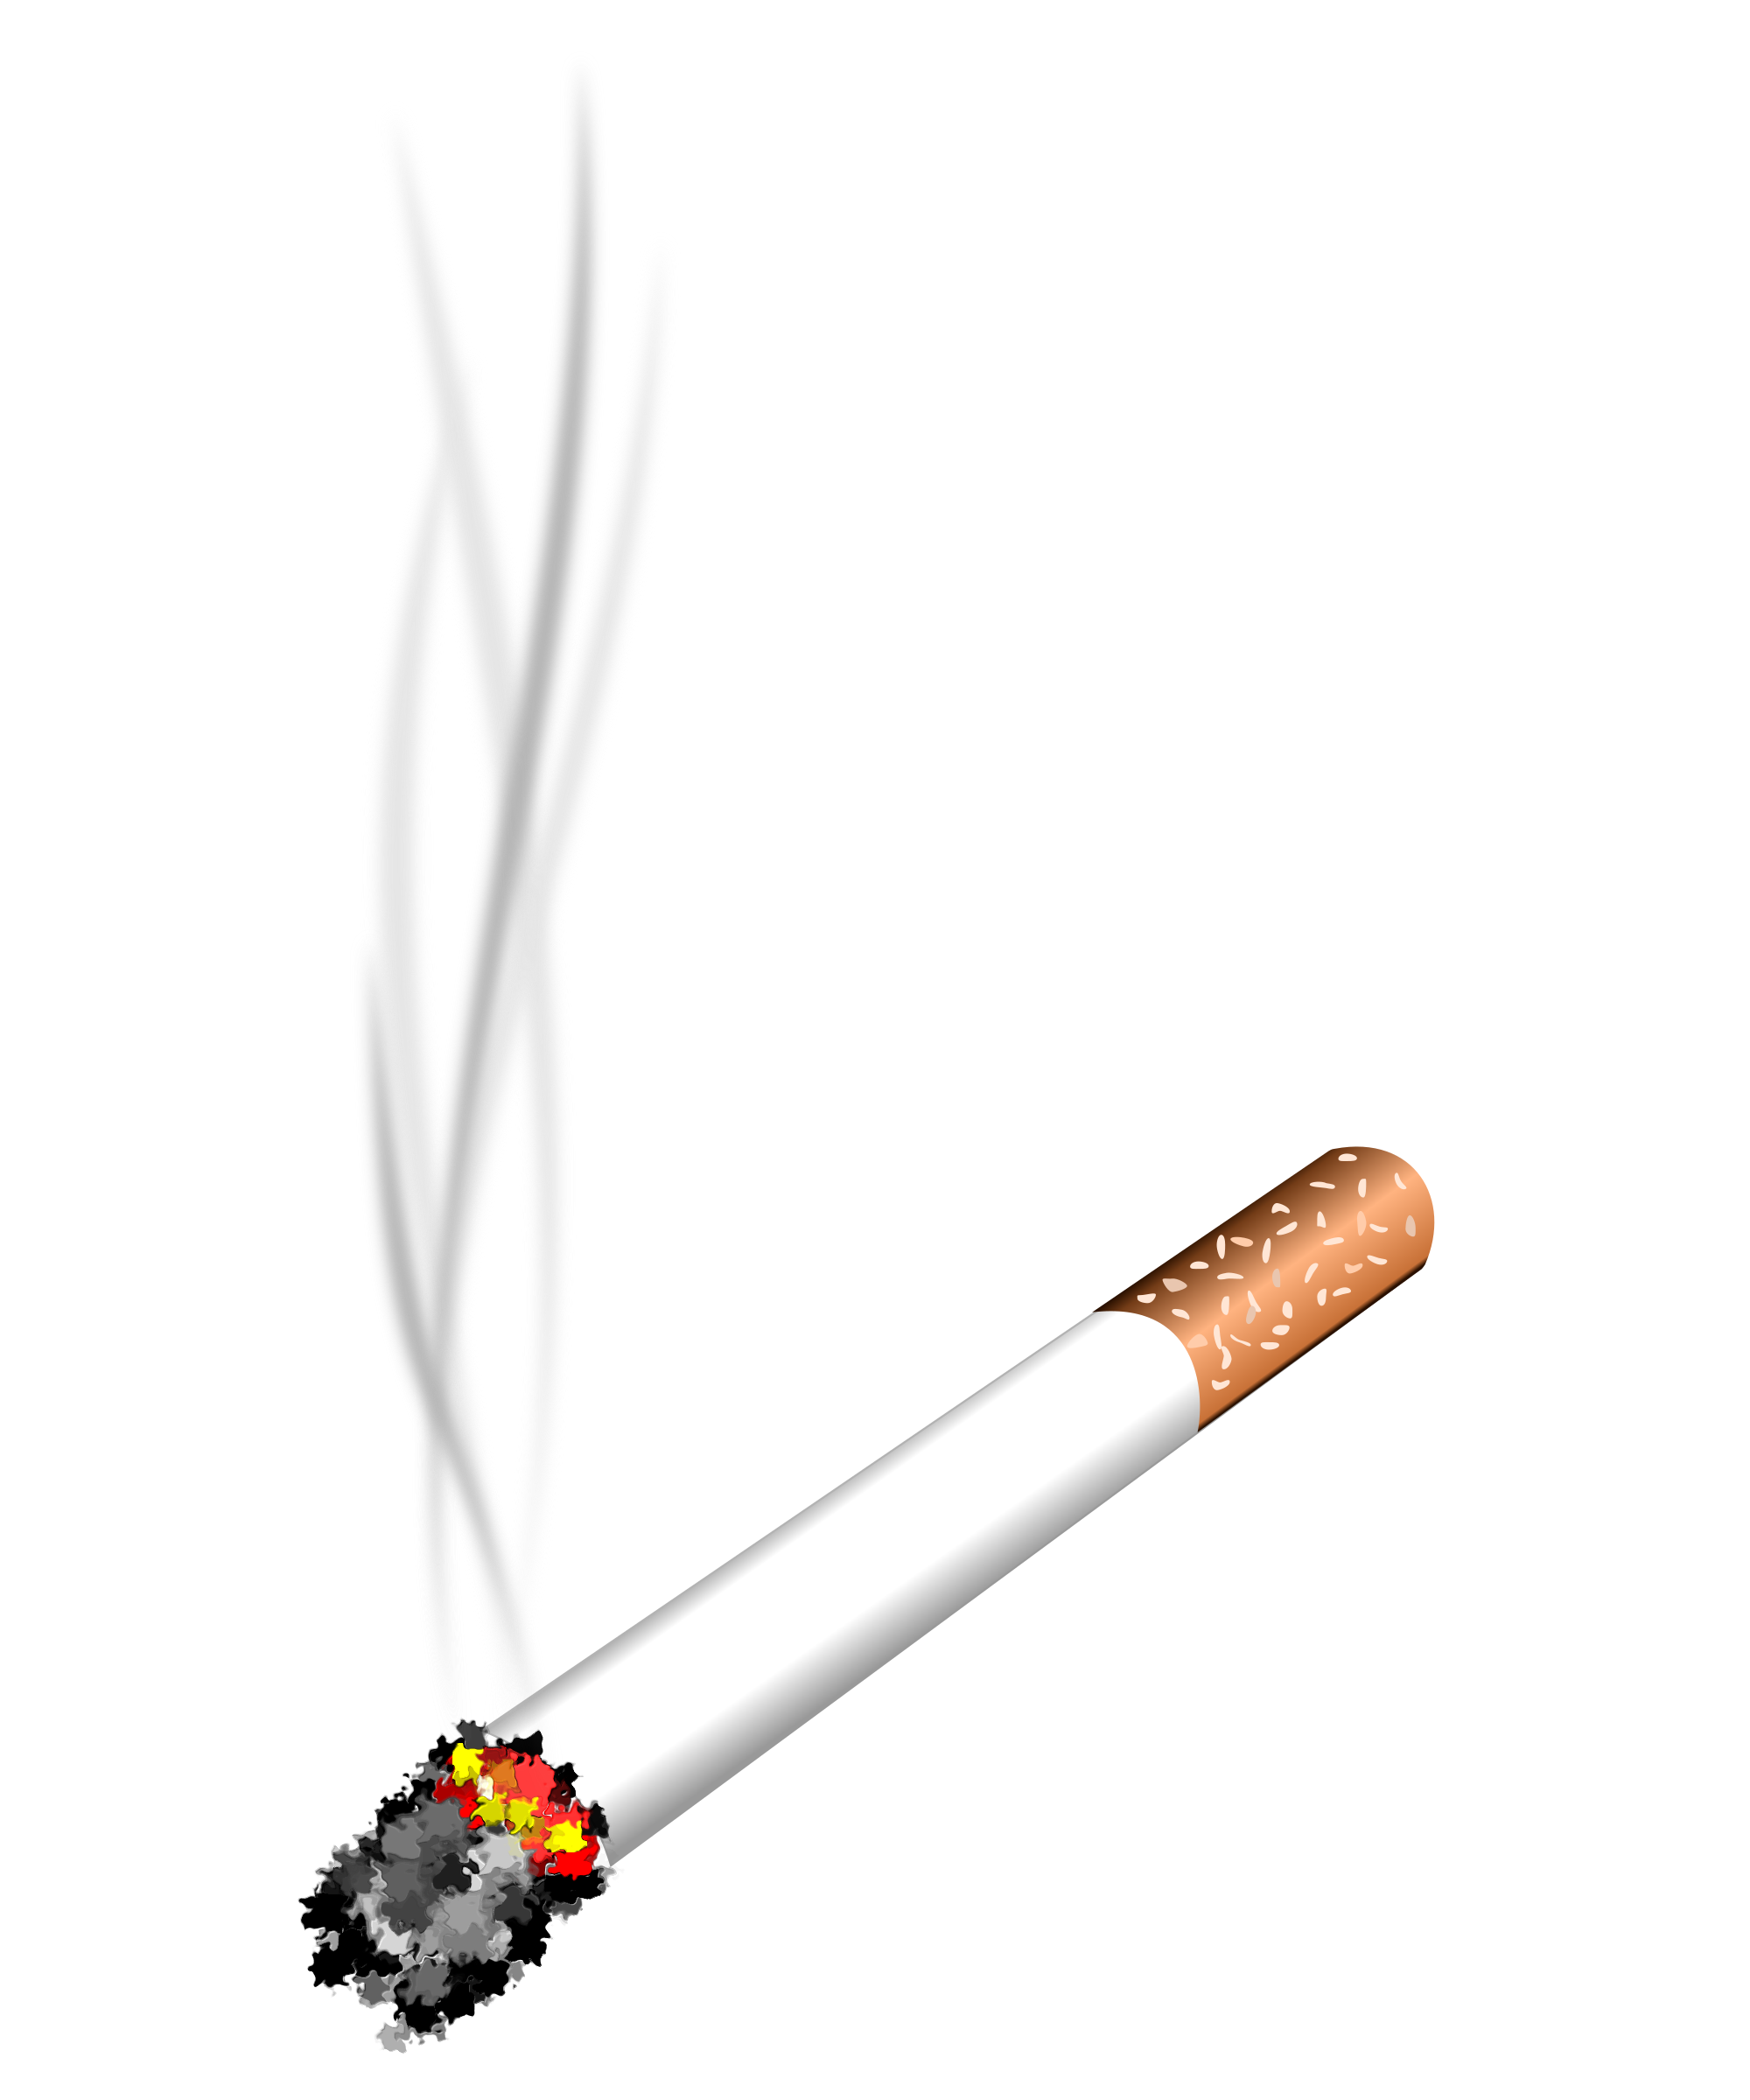 Thug life transparent images. Cigarette smoke png